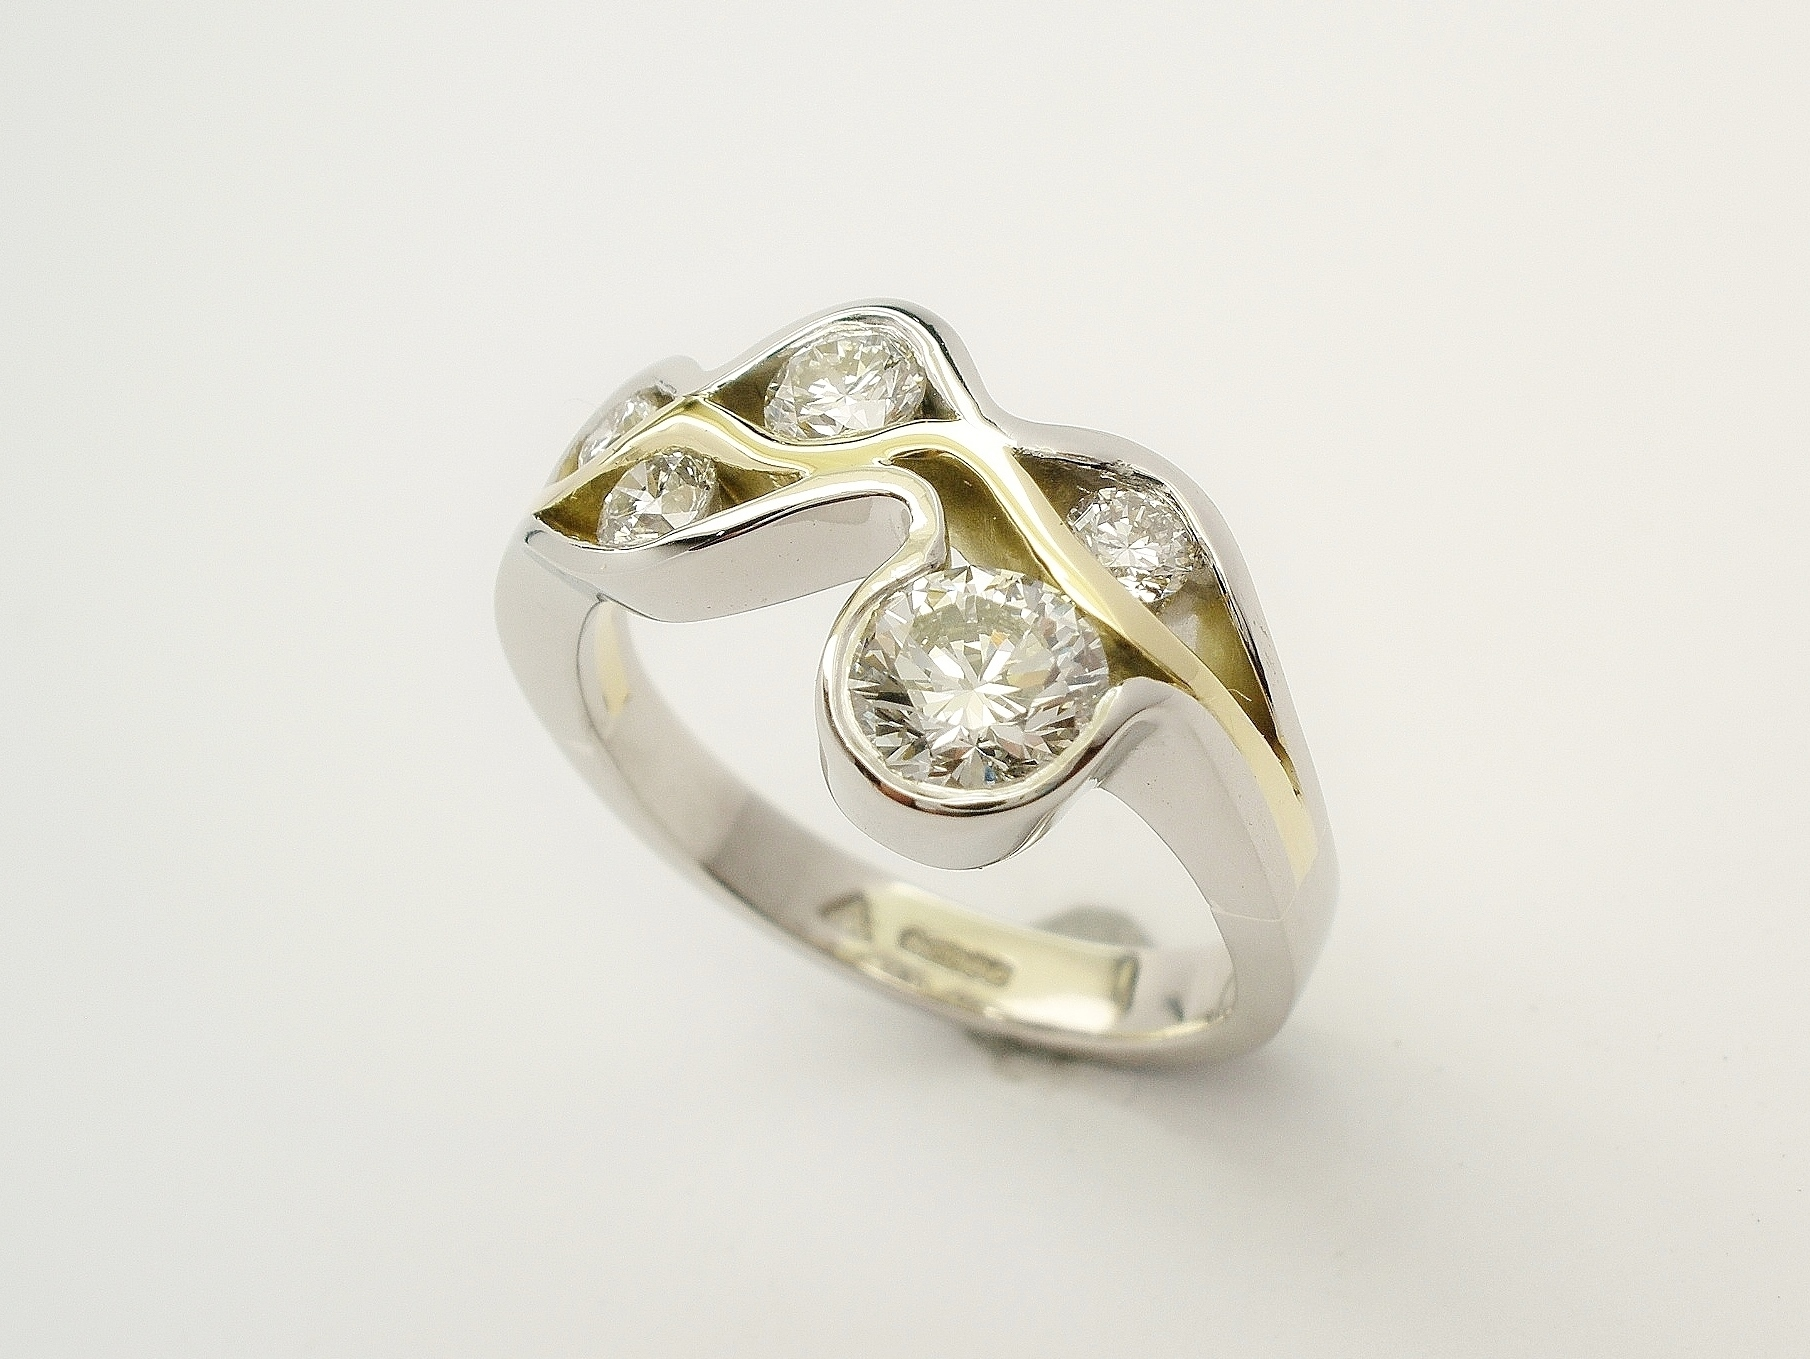 Round brilliant cut diamond 'Wave' ring mounted in Platinum and 18ct. yellow gold.